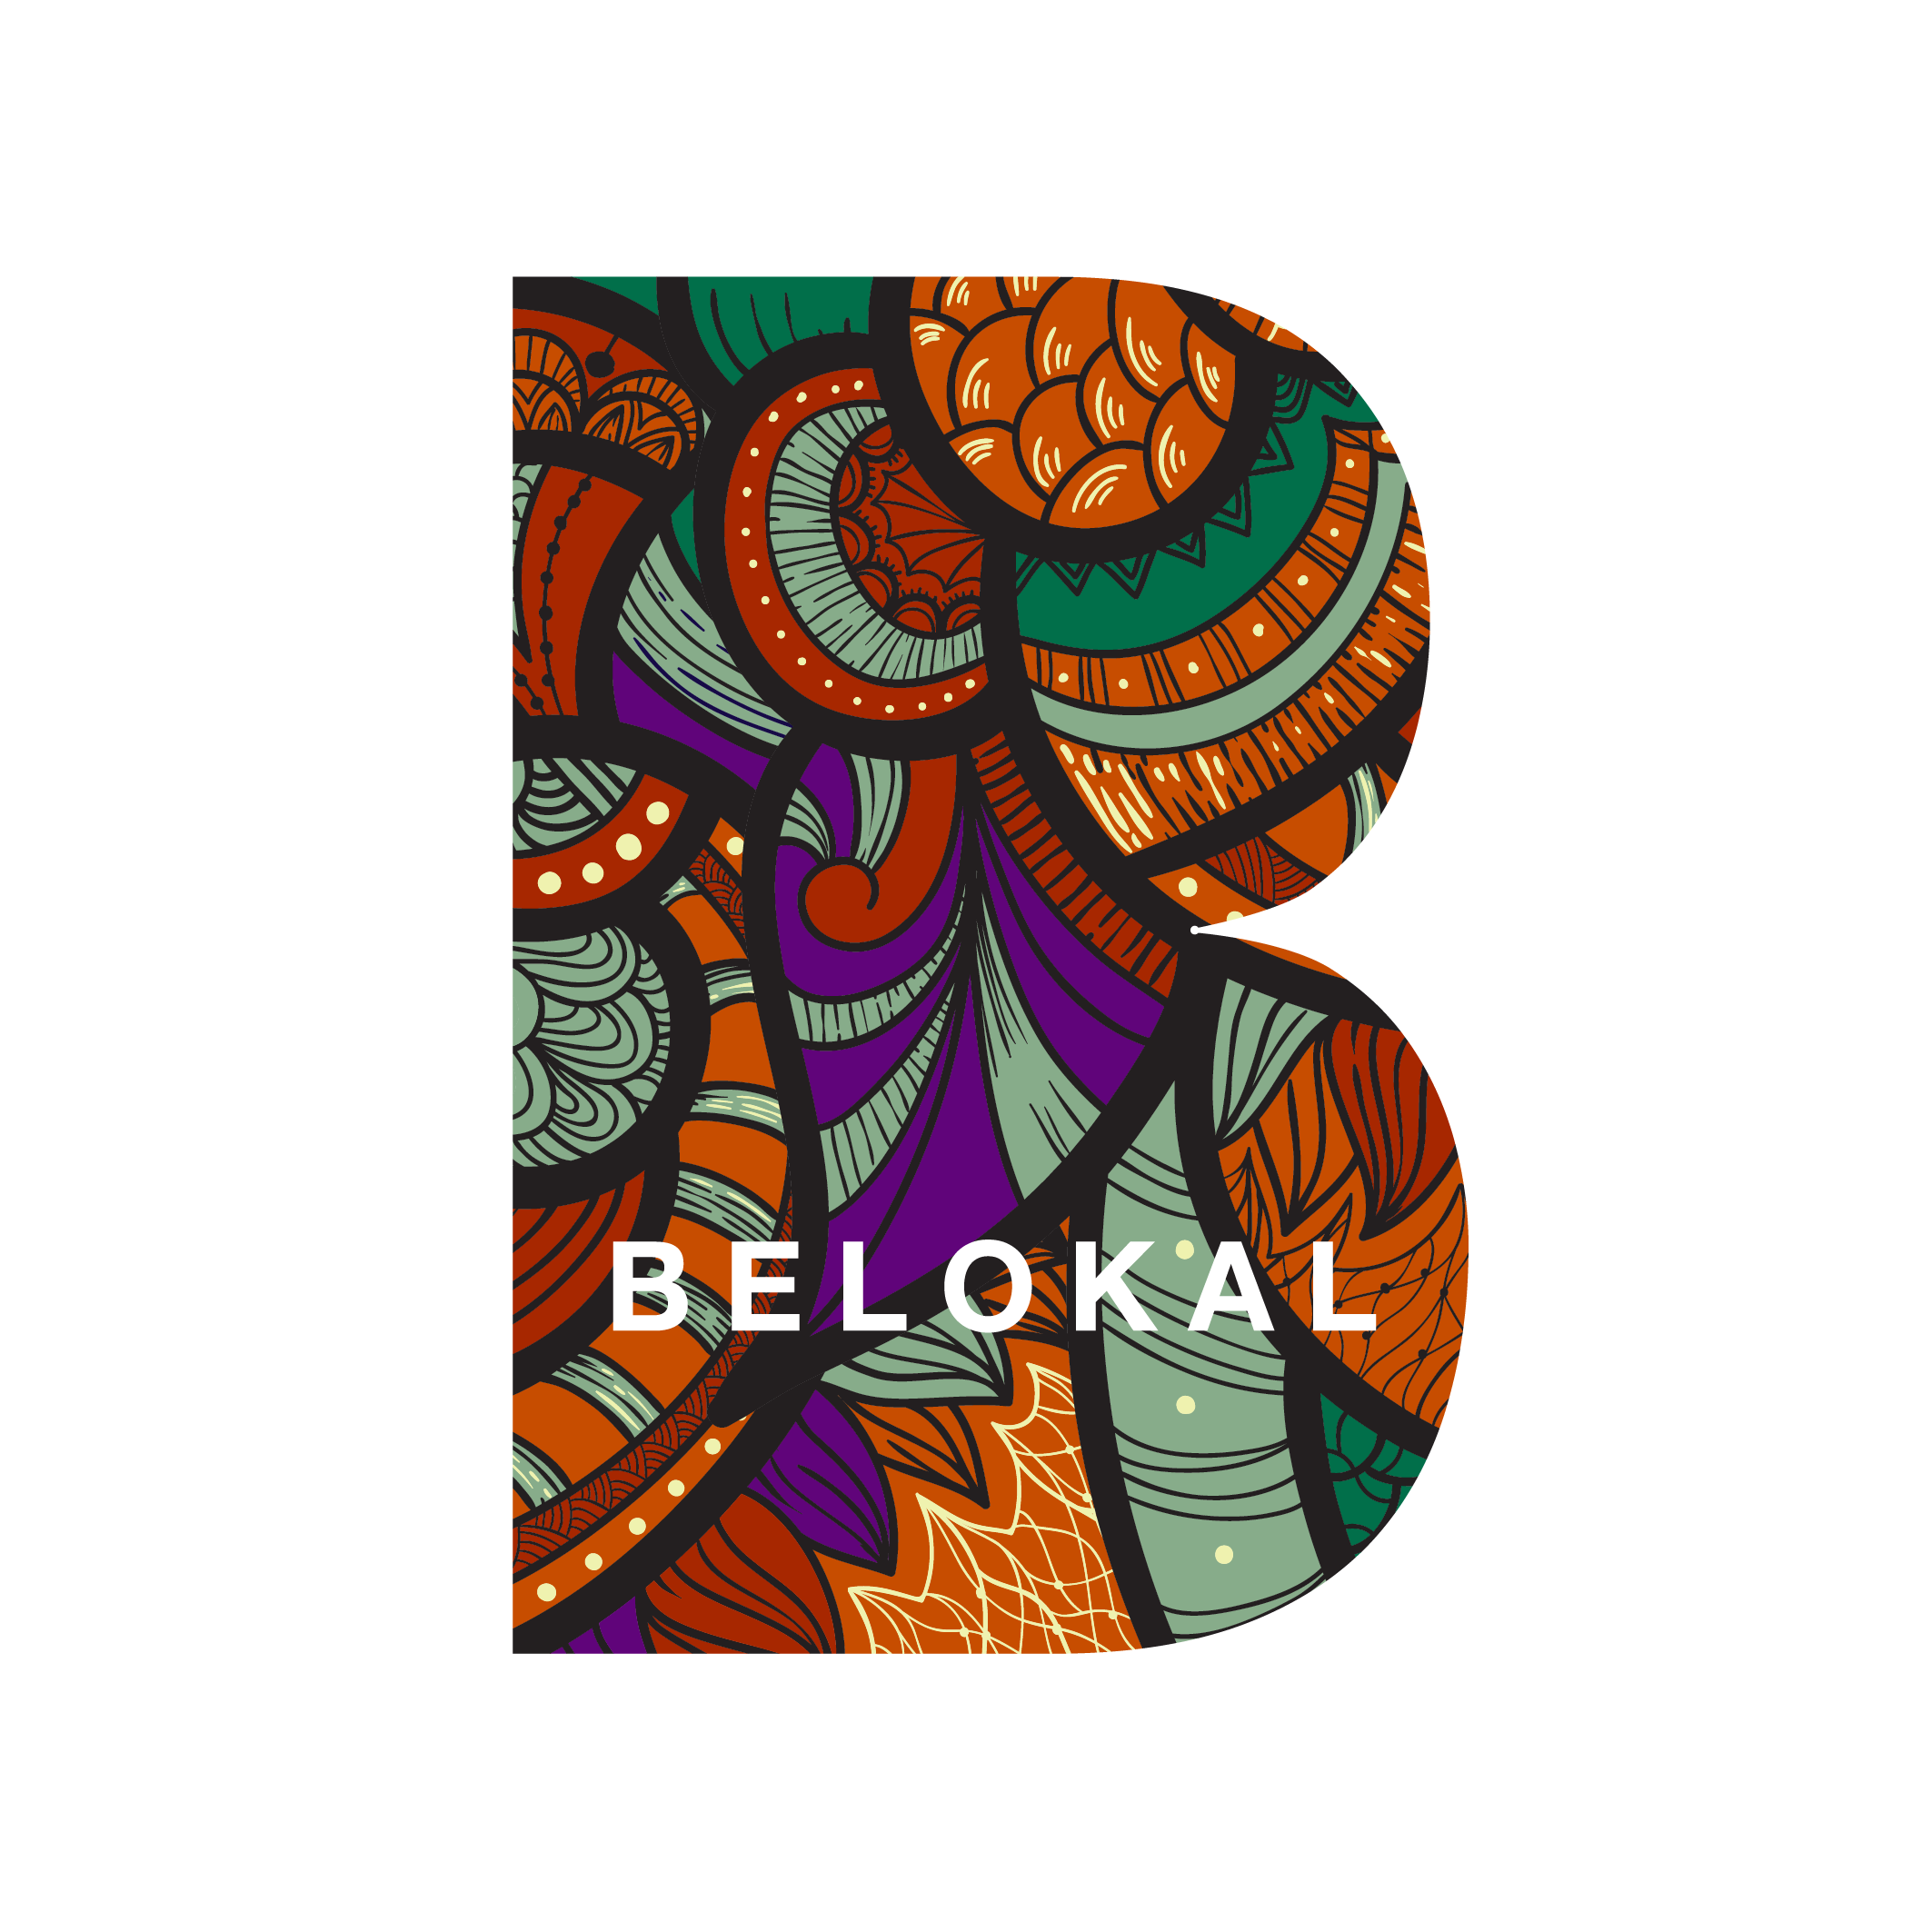 Belokal is not just another marketplace but it is an exuberant place for the artisans and entrepreneurs to proudly promote and share their unique identities and products to those who share the same beliefs